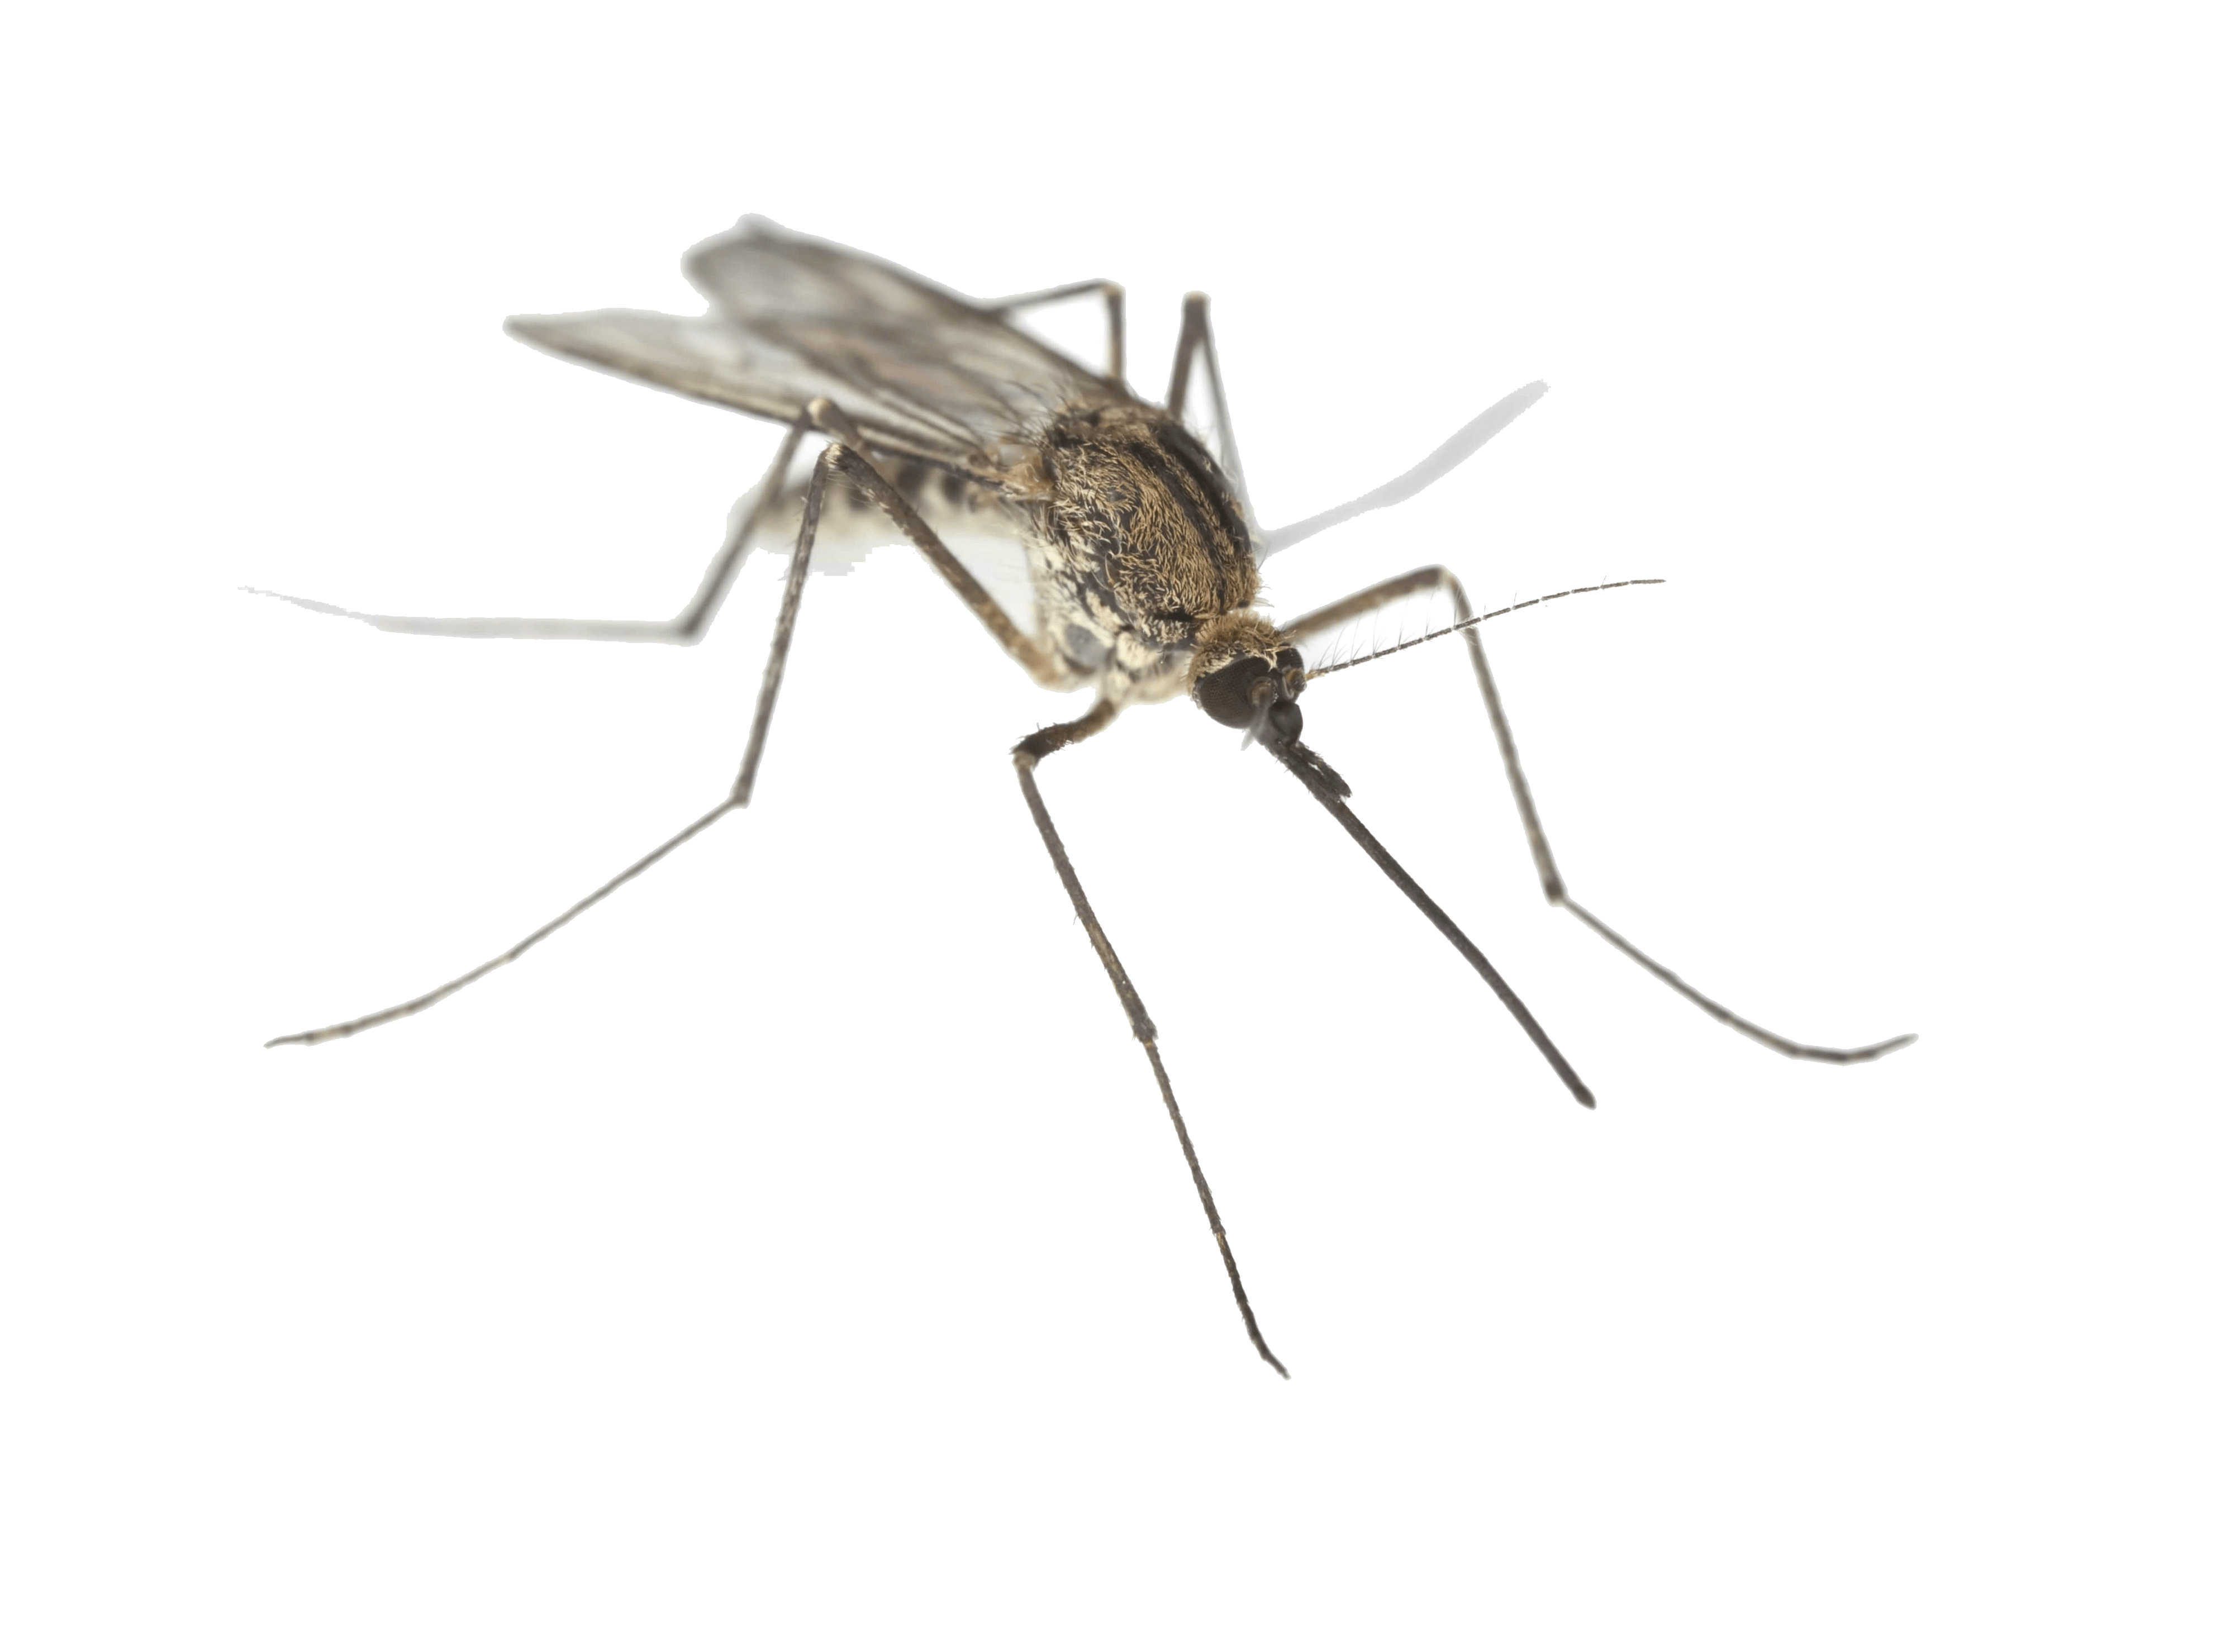 png royalty free stock Png images free download. Mosquito clipart dead mosquito.